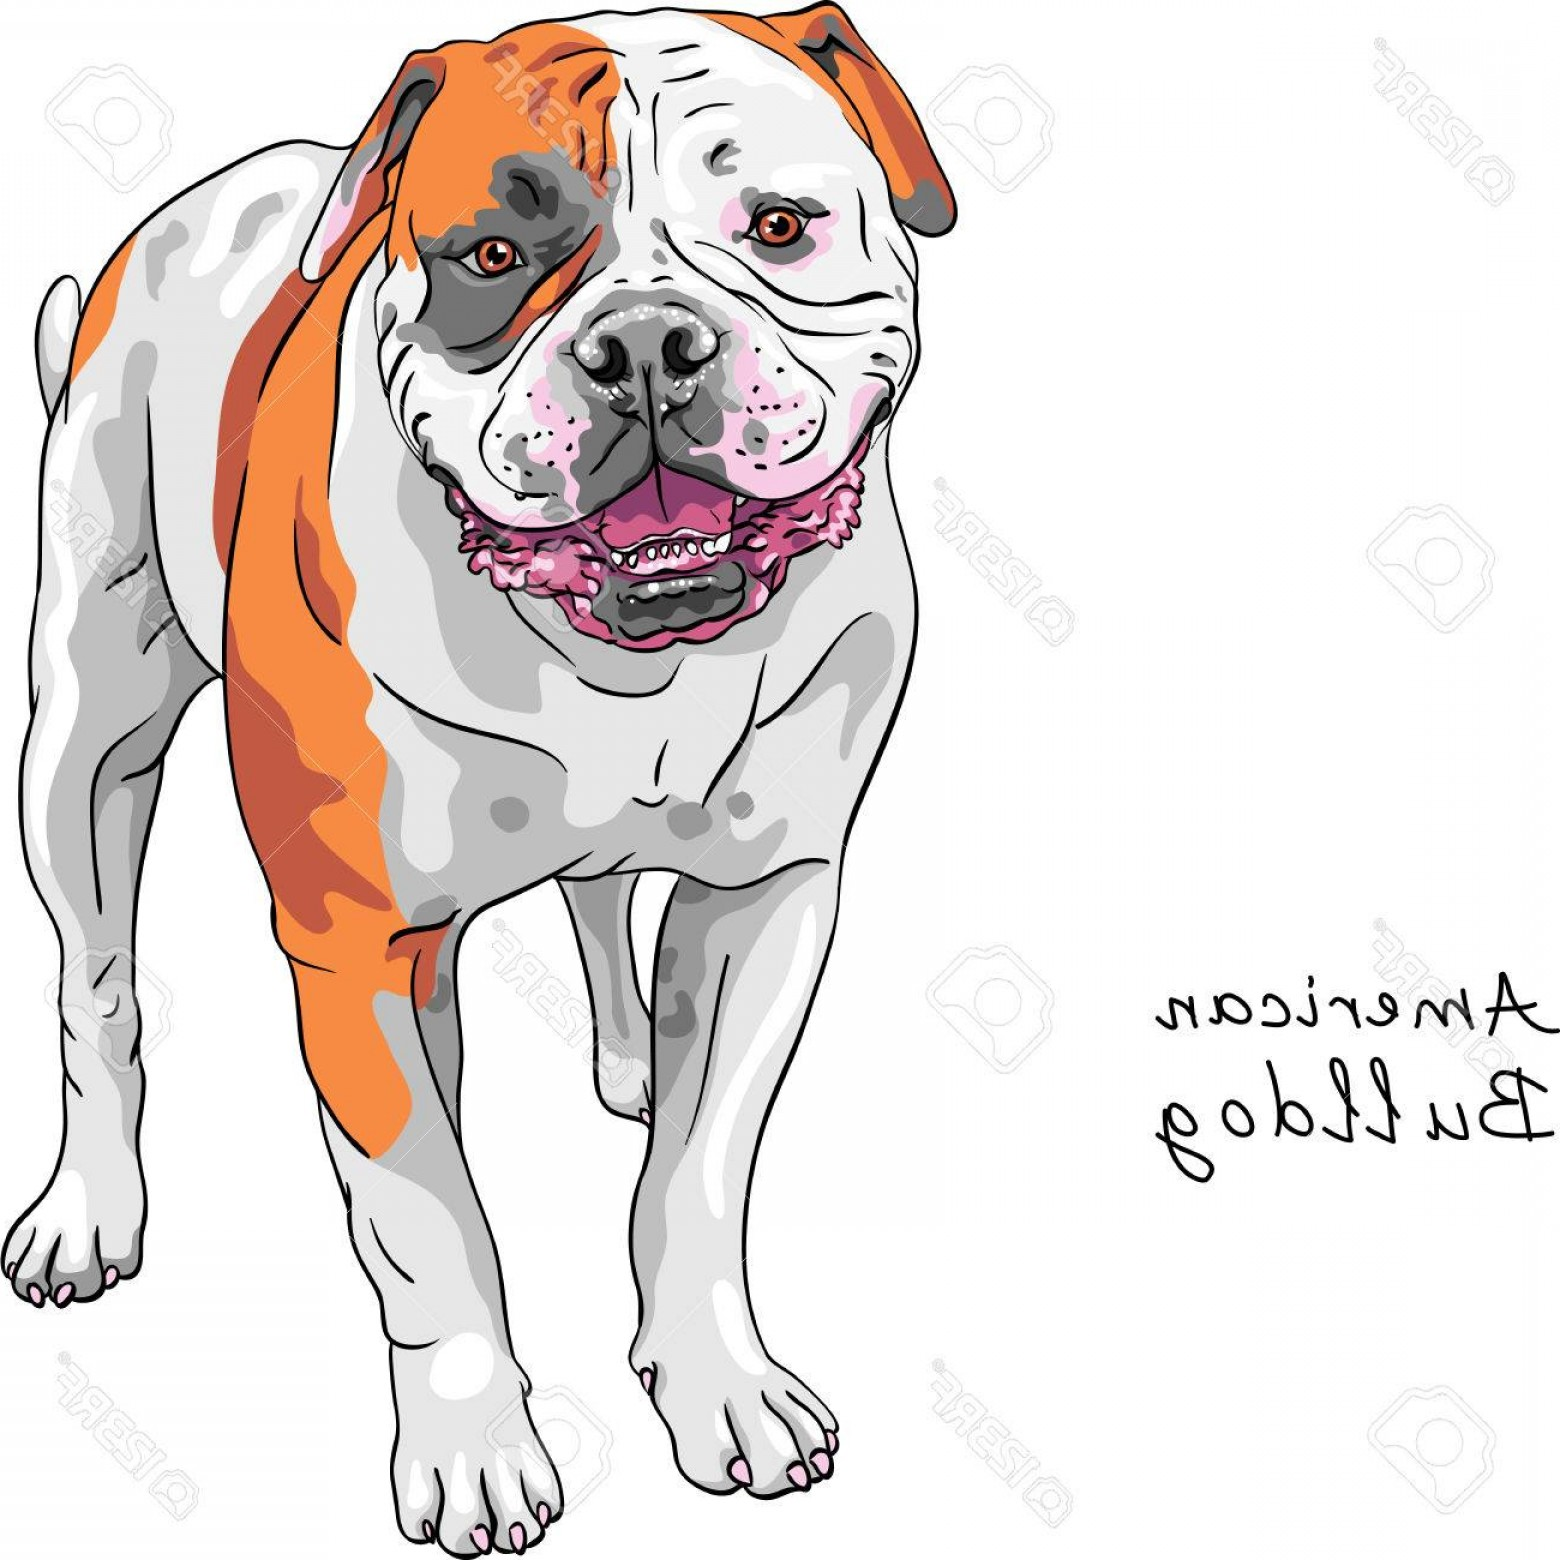 Vector Smiling Bulldog: Photostock Vector Color Sketch Of The Dog American Bulldog Breed Standing And Smiling